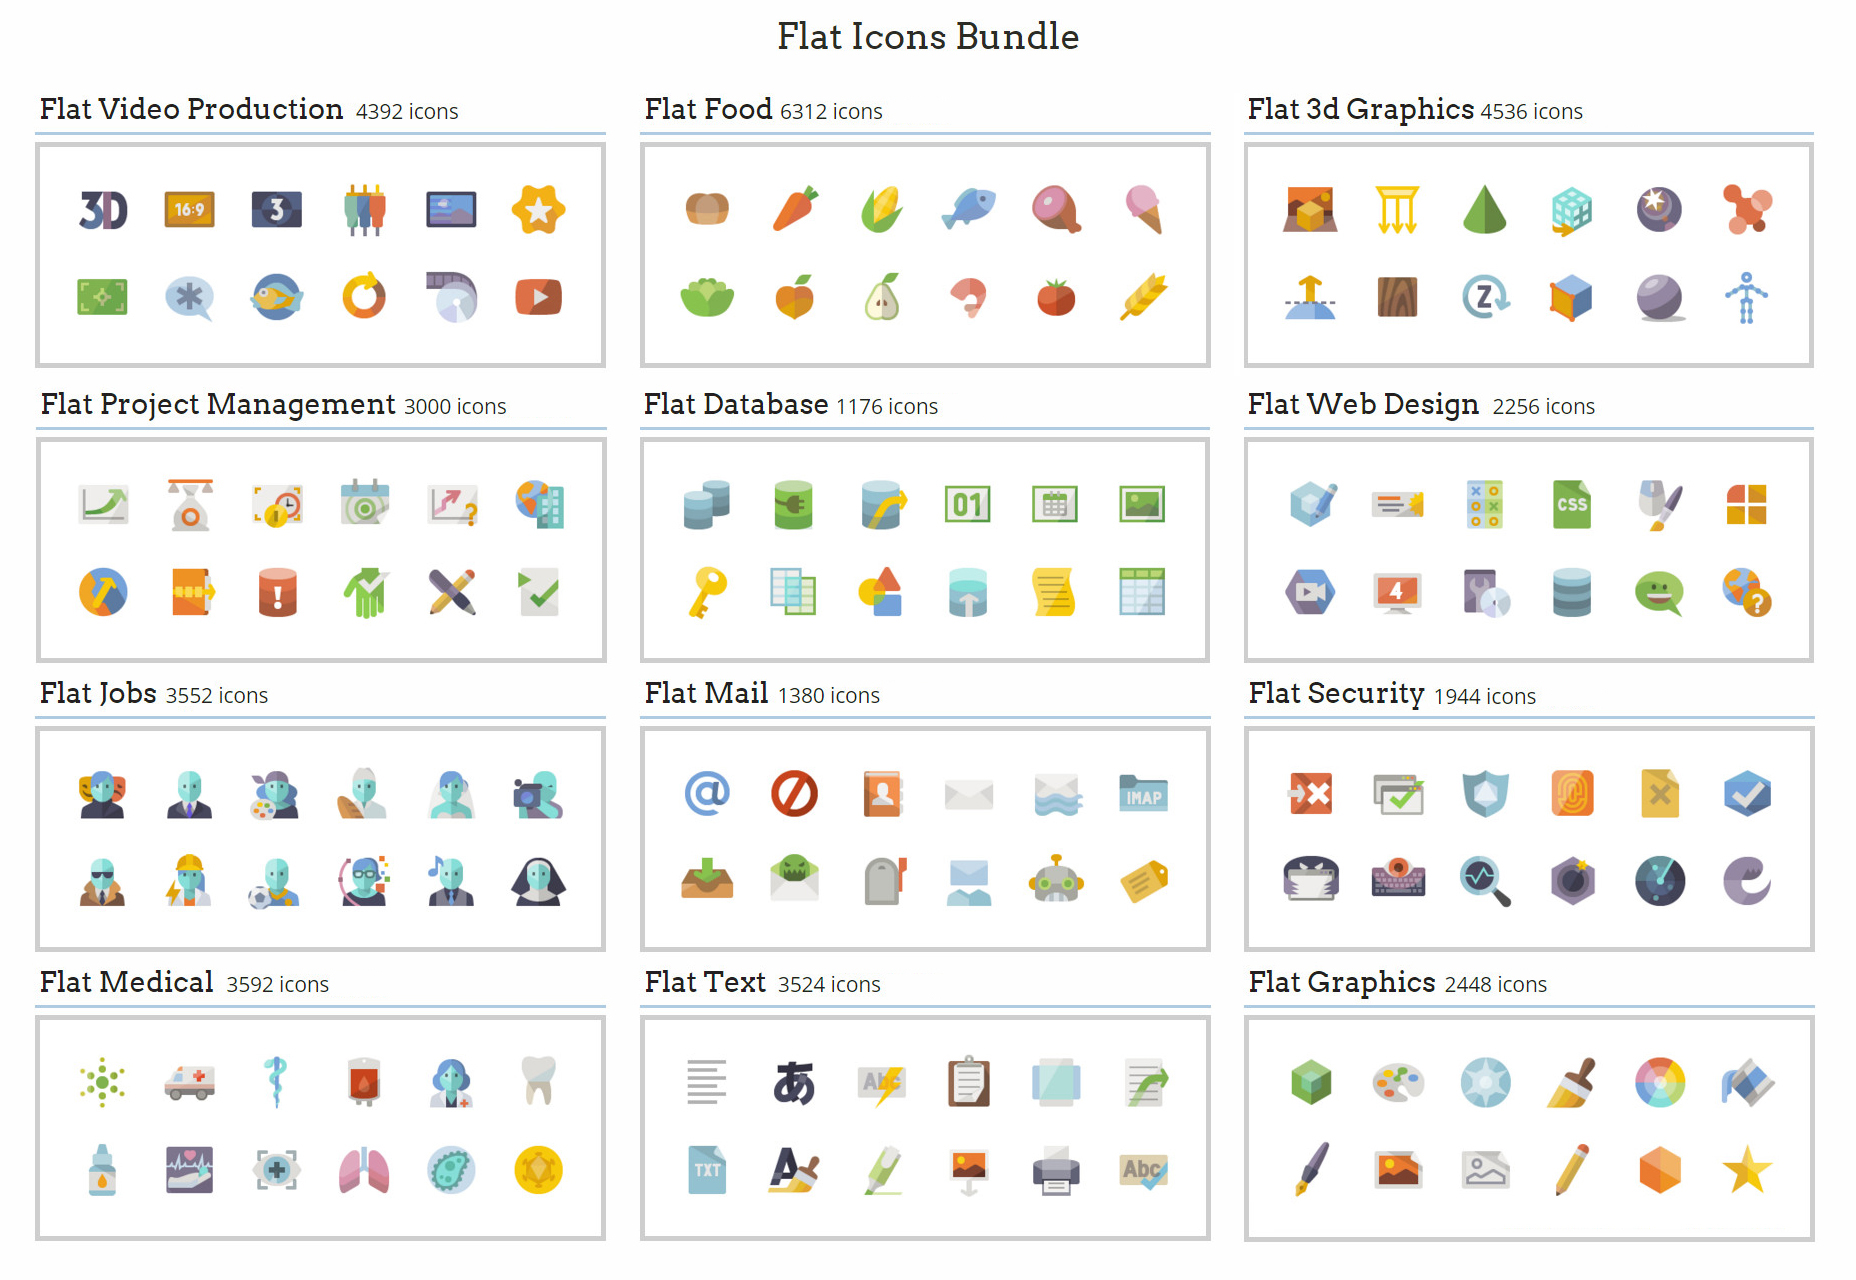 a-massive-bundle-of-several-flat-icons-over-56k-in-total